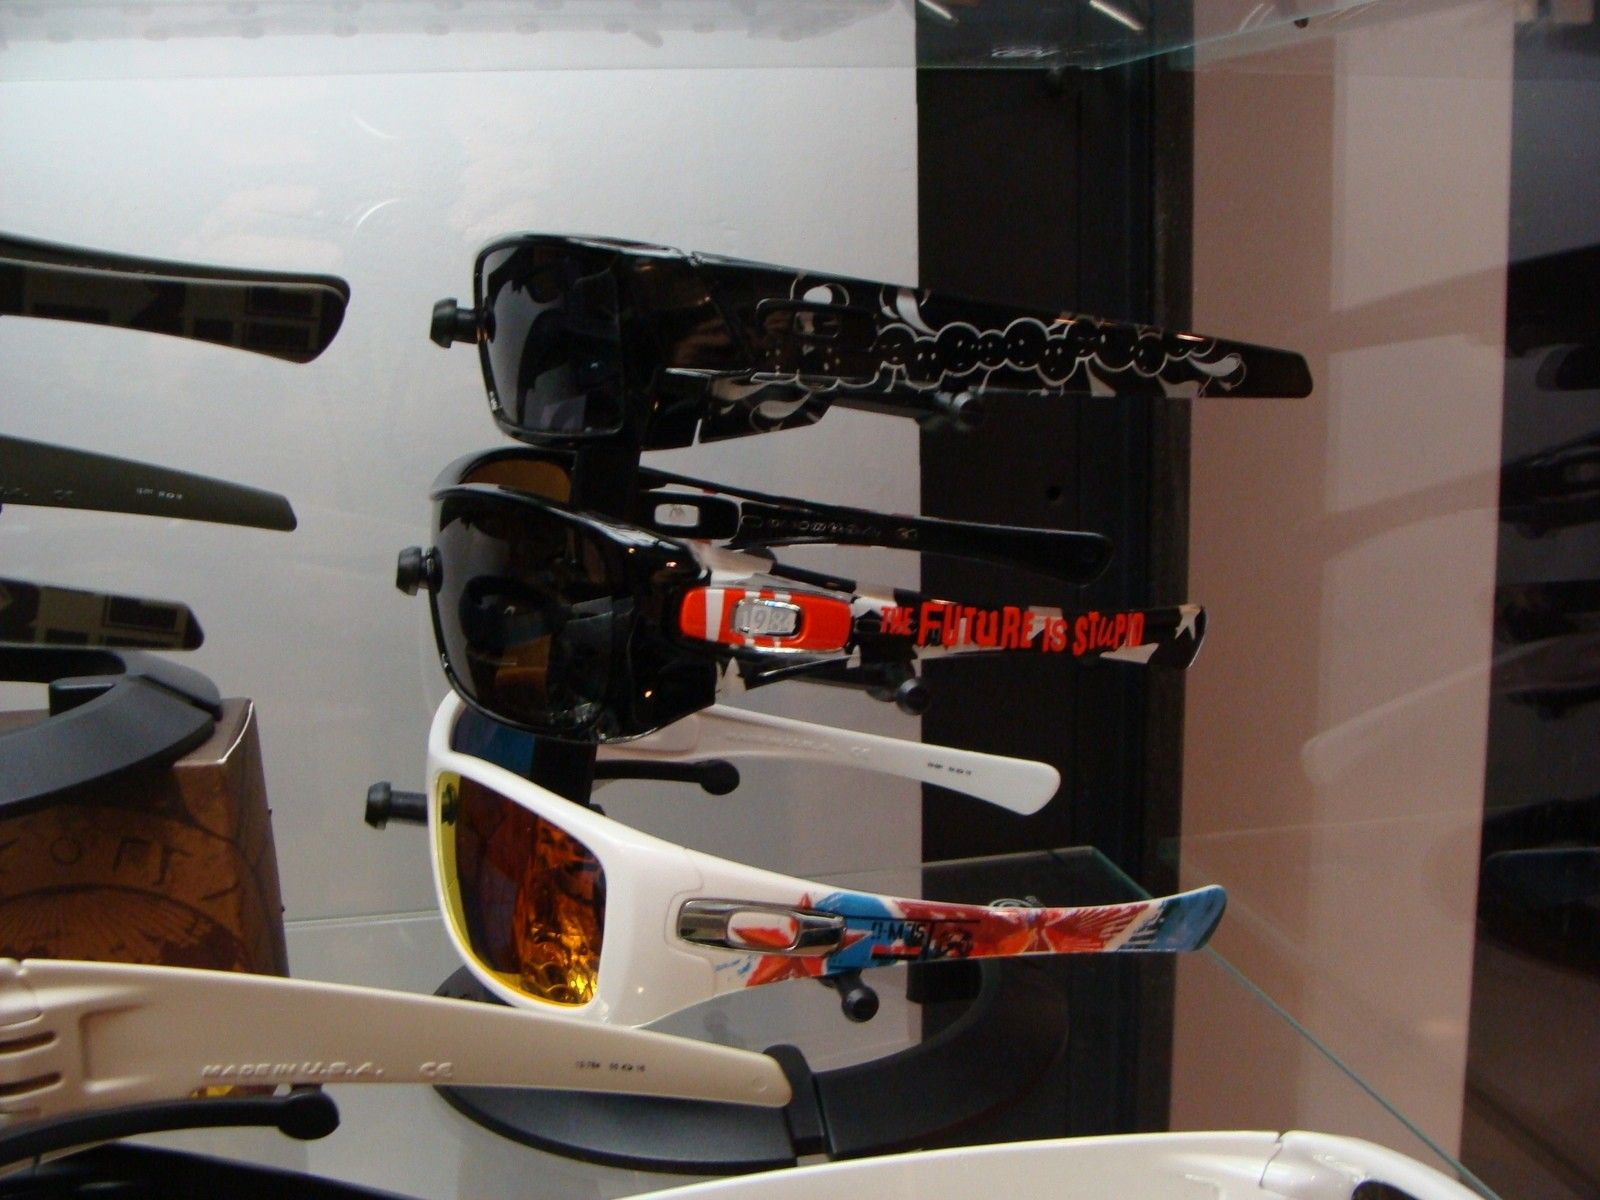 Preview Of My Oakley Collection - DSC07619.JPG